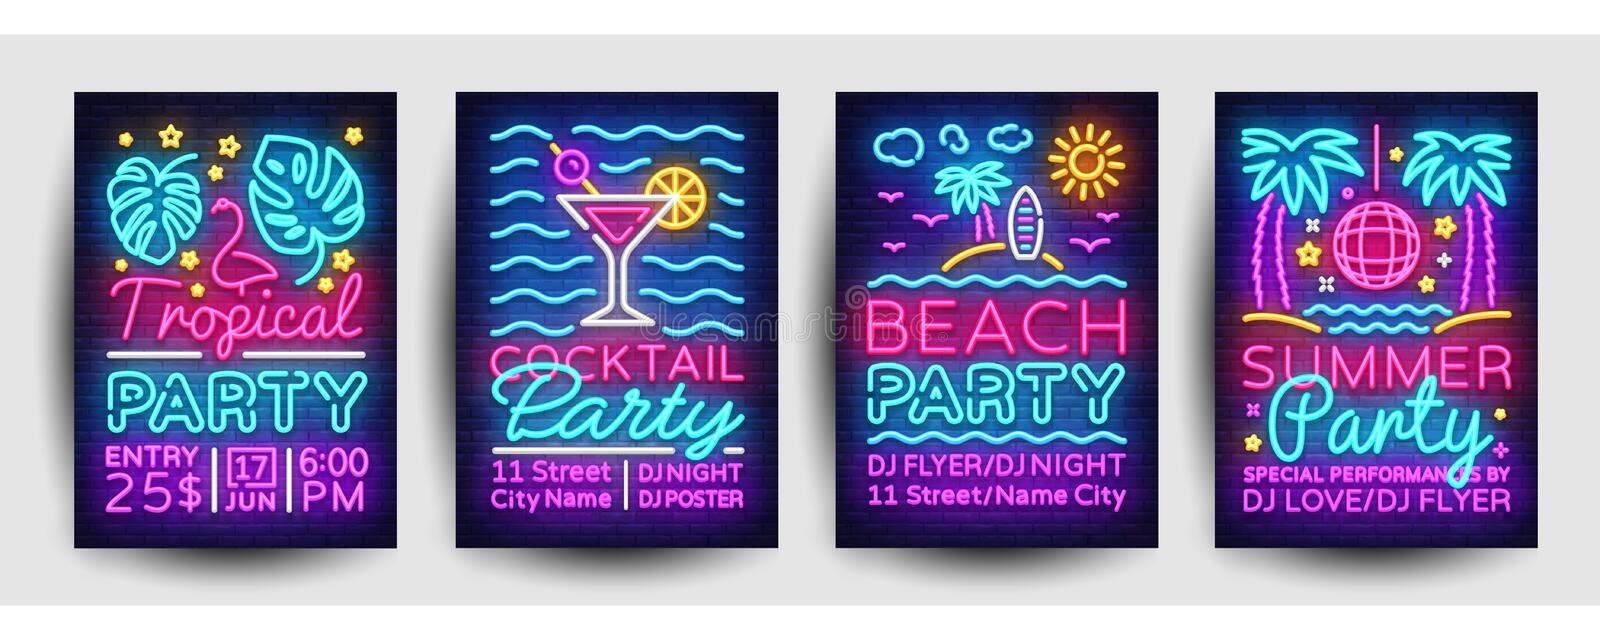 Summer party posters collection neon vector. Summer party design template, bright neon brochure, modern trend design royalty free illustration